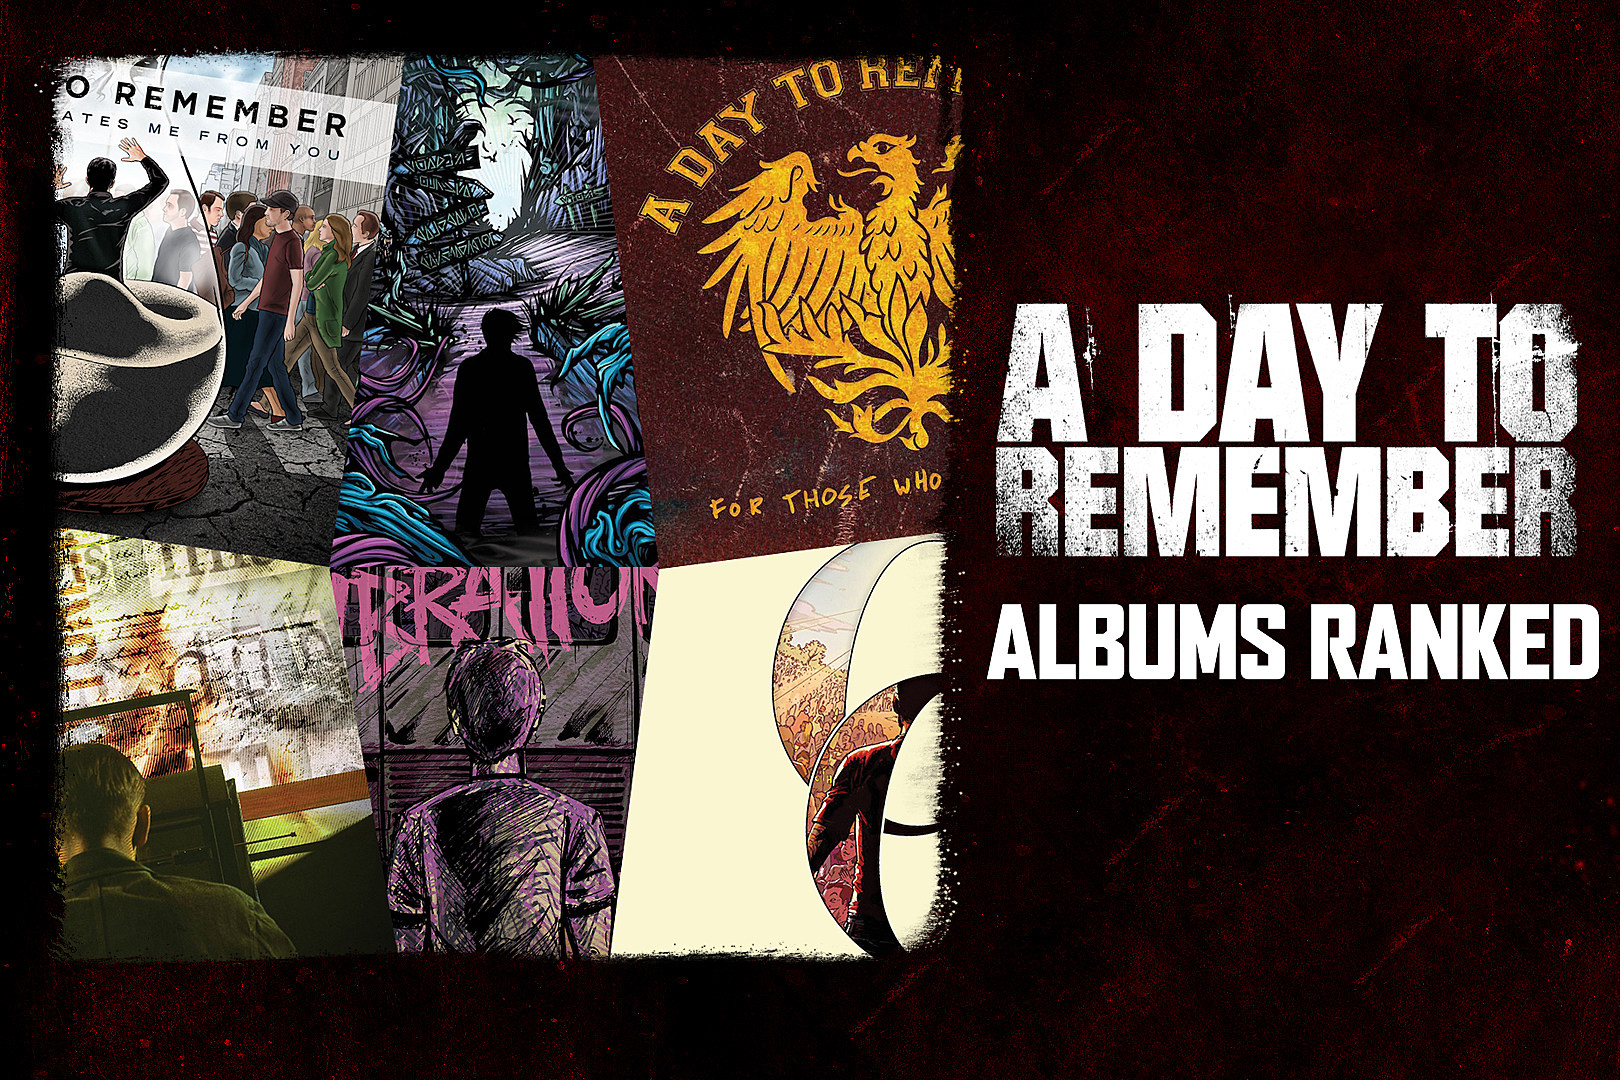 A Day To Remember Album